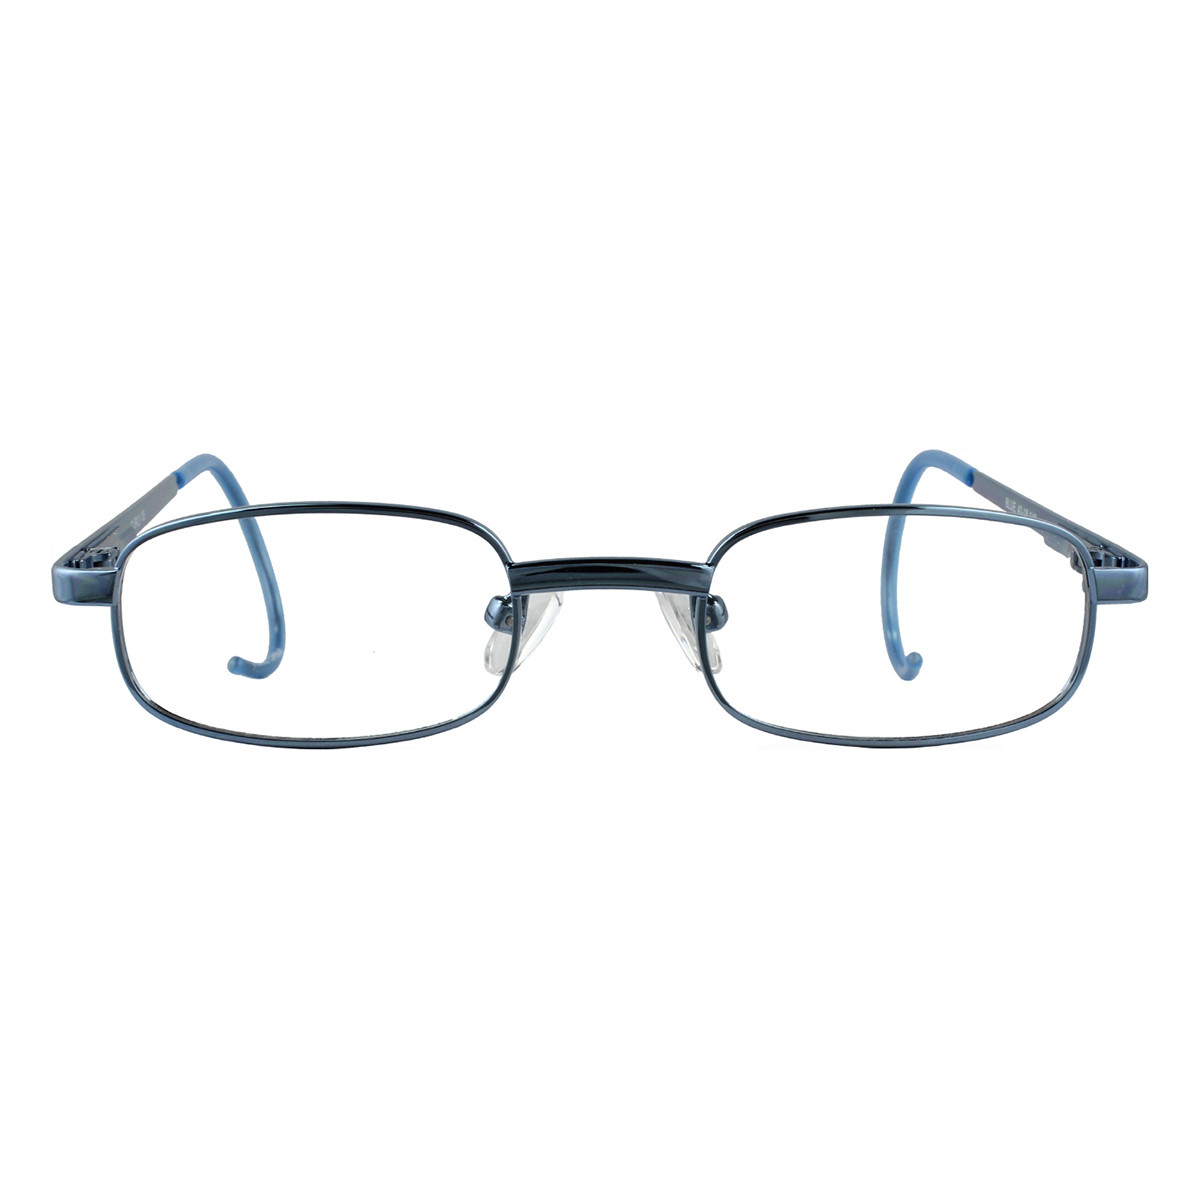 NH Medicaid / Limited Editions / Curly / Eyeglasses | E-Z ...